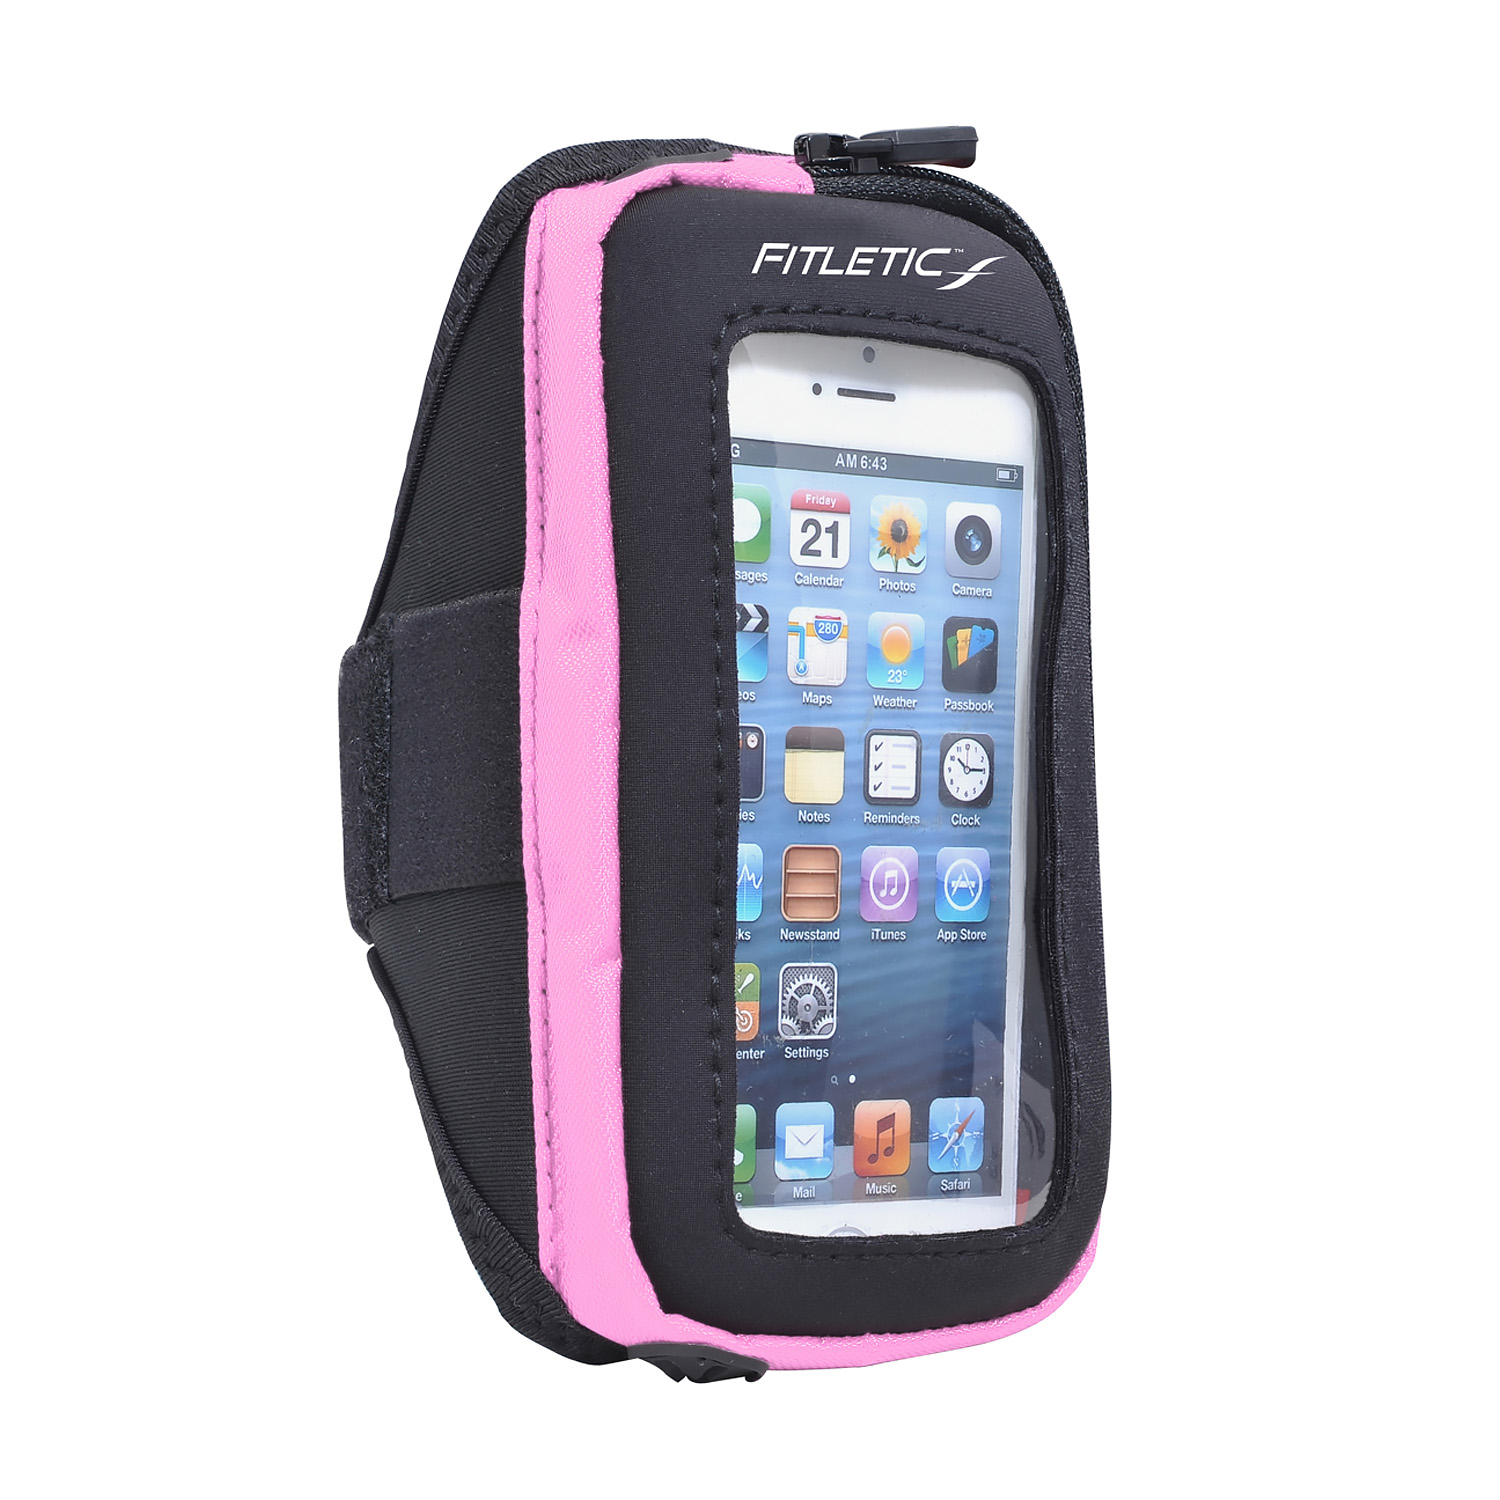 Fitletic Smart Phone Arm Band with Window Black/Pink-L/XL